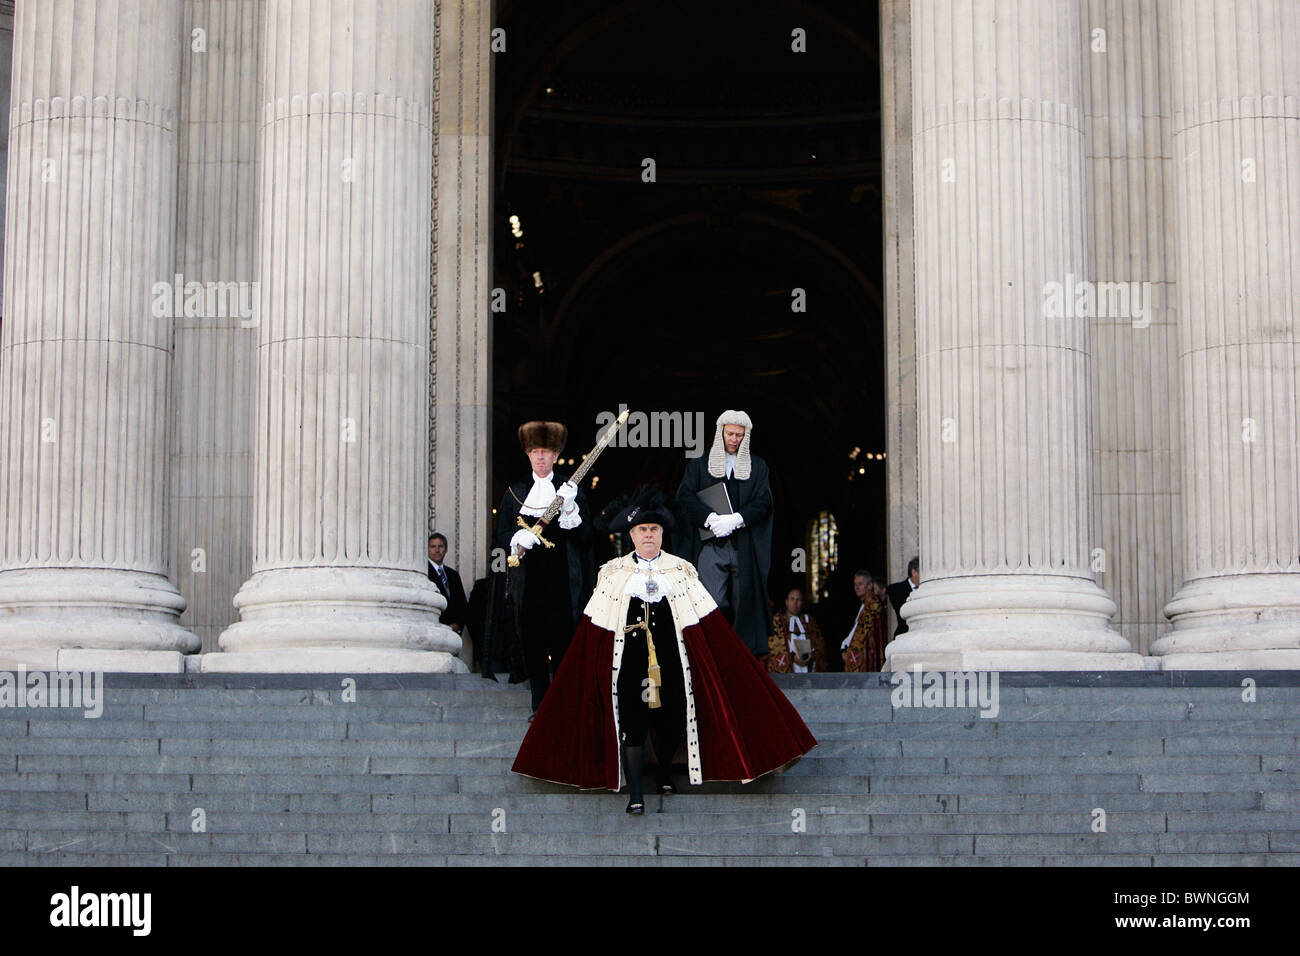 The Lord Mayor of London, David Brewer, in procession leaves St Paul's Cathedral in London Stock Photo